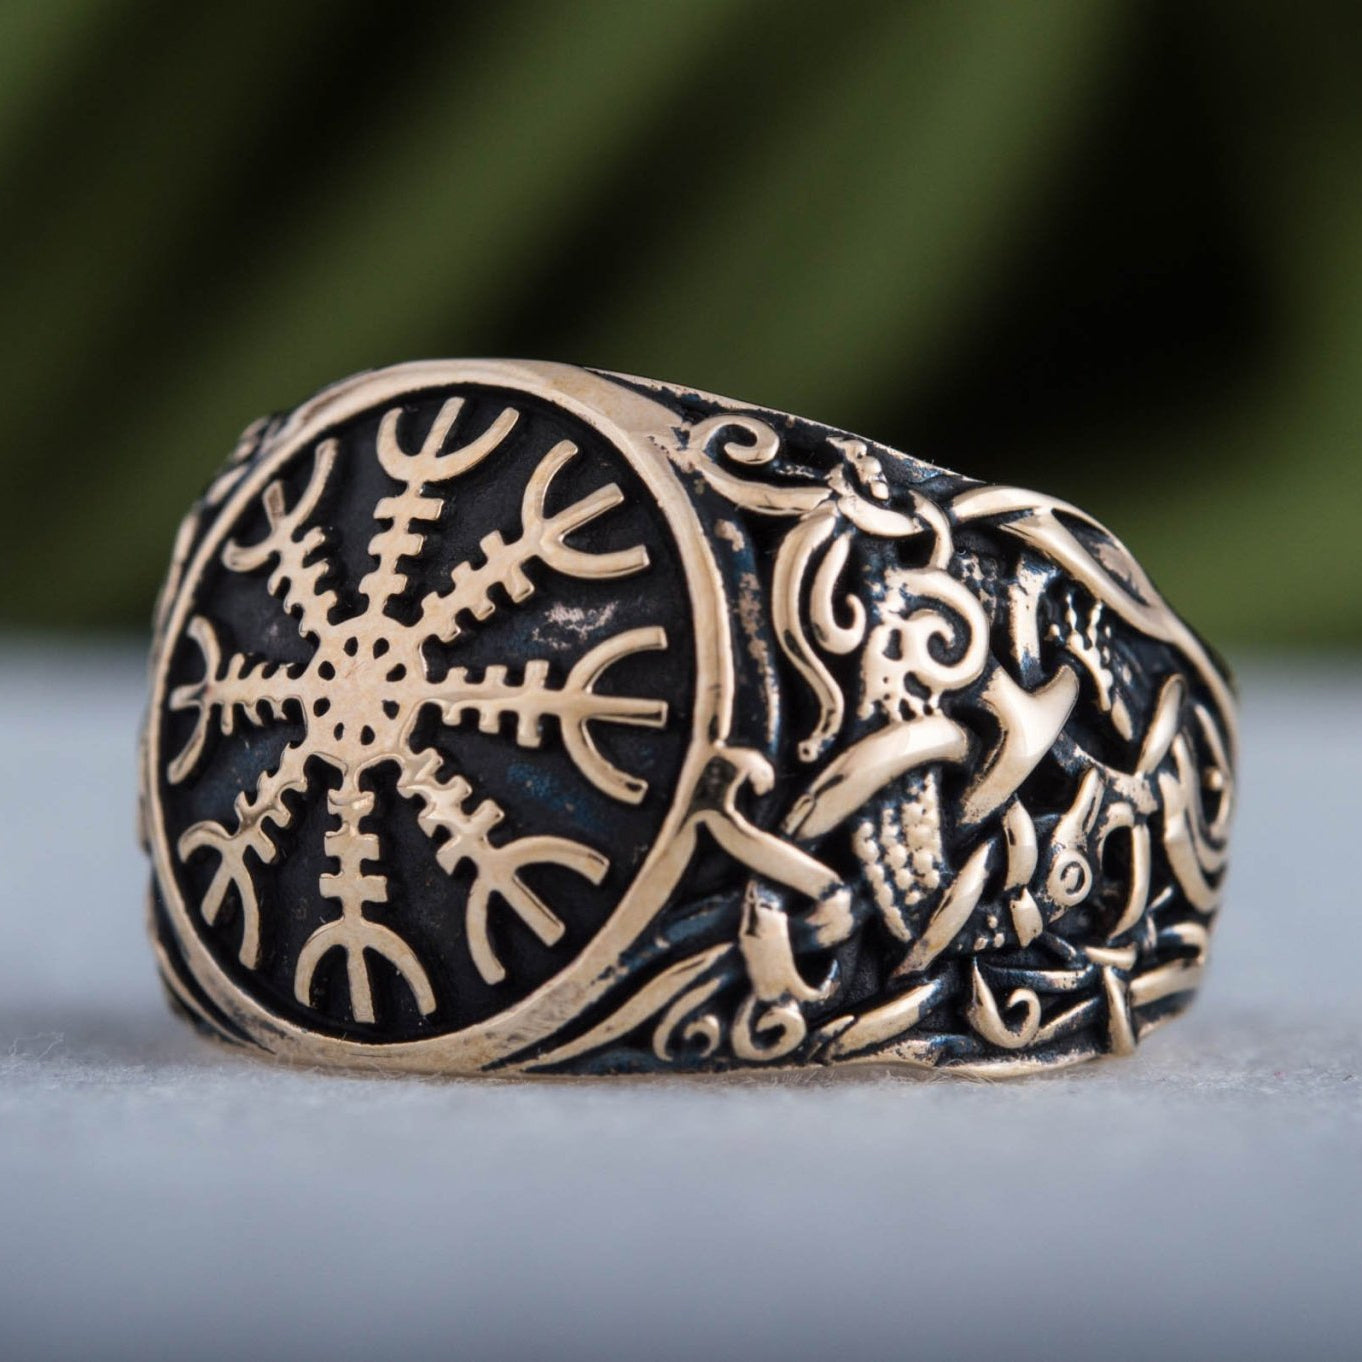 Helm of Awe Ring with Mammen Ornament Handcrafted Bronze Viking Ring